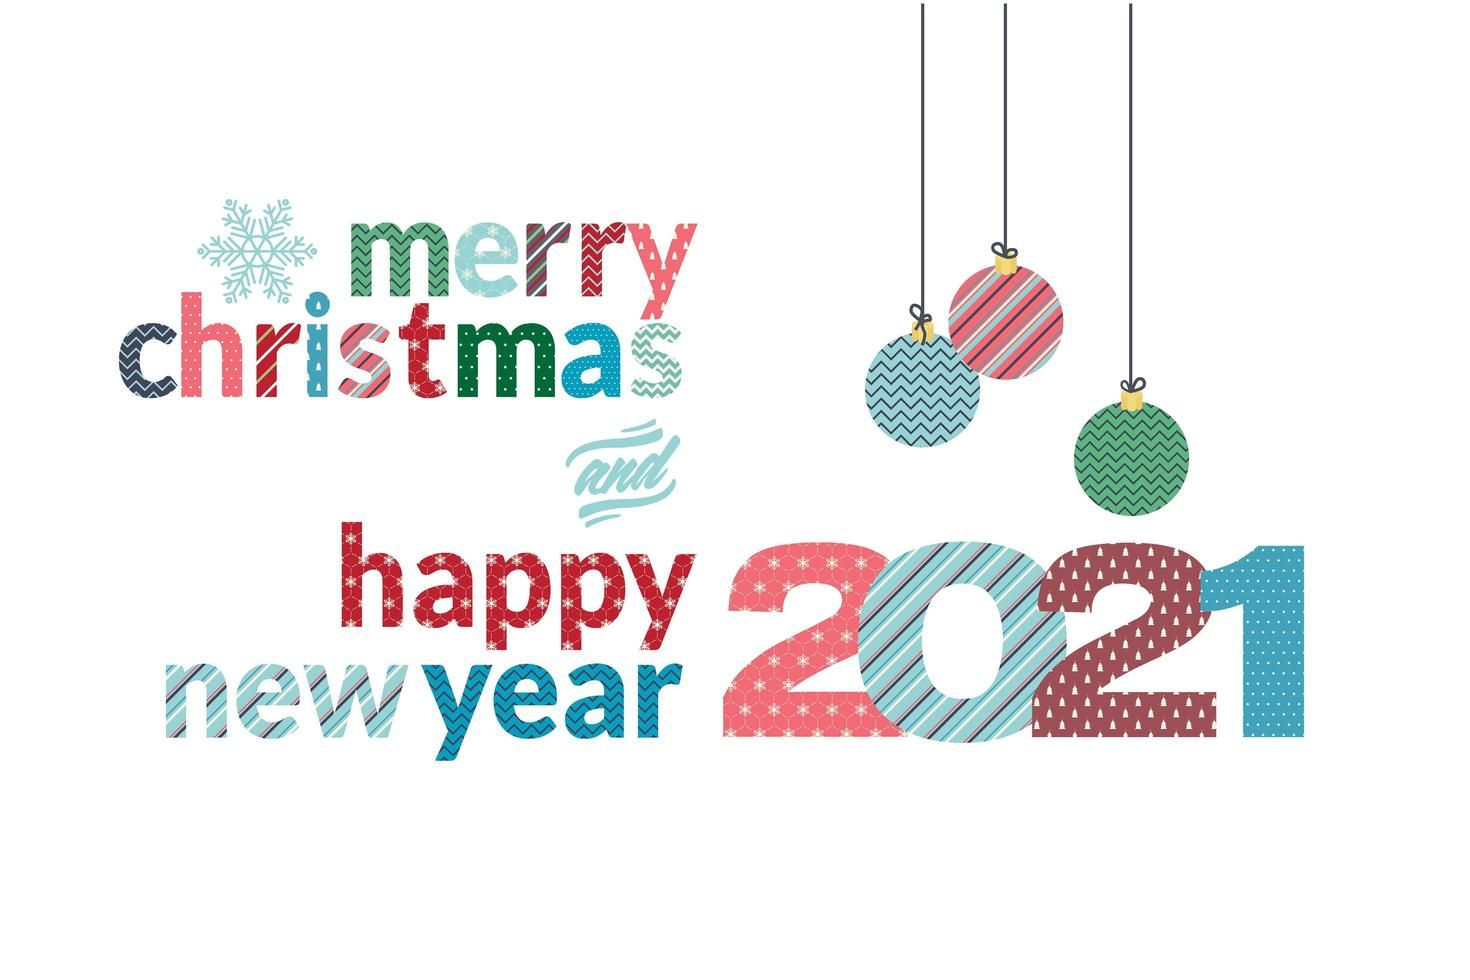 Merry Christmas And Happy New Year 2021 Happy New Year Signs Merry Christmas And Happy New Year Merry Christmas